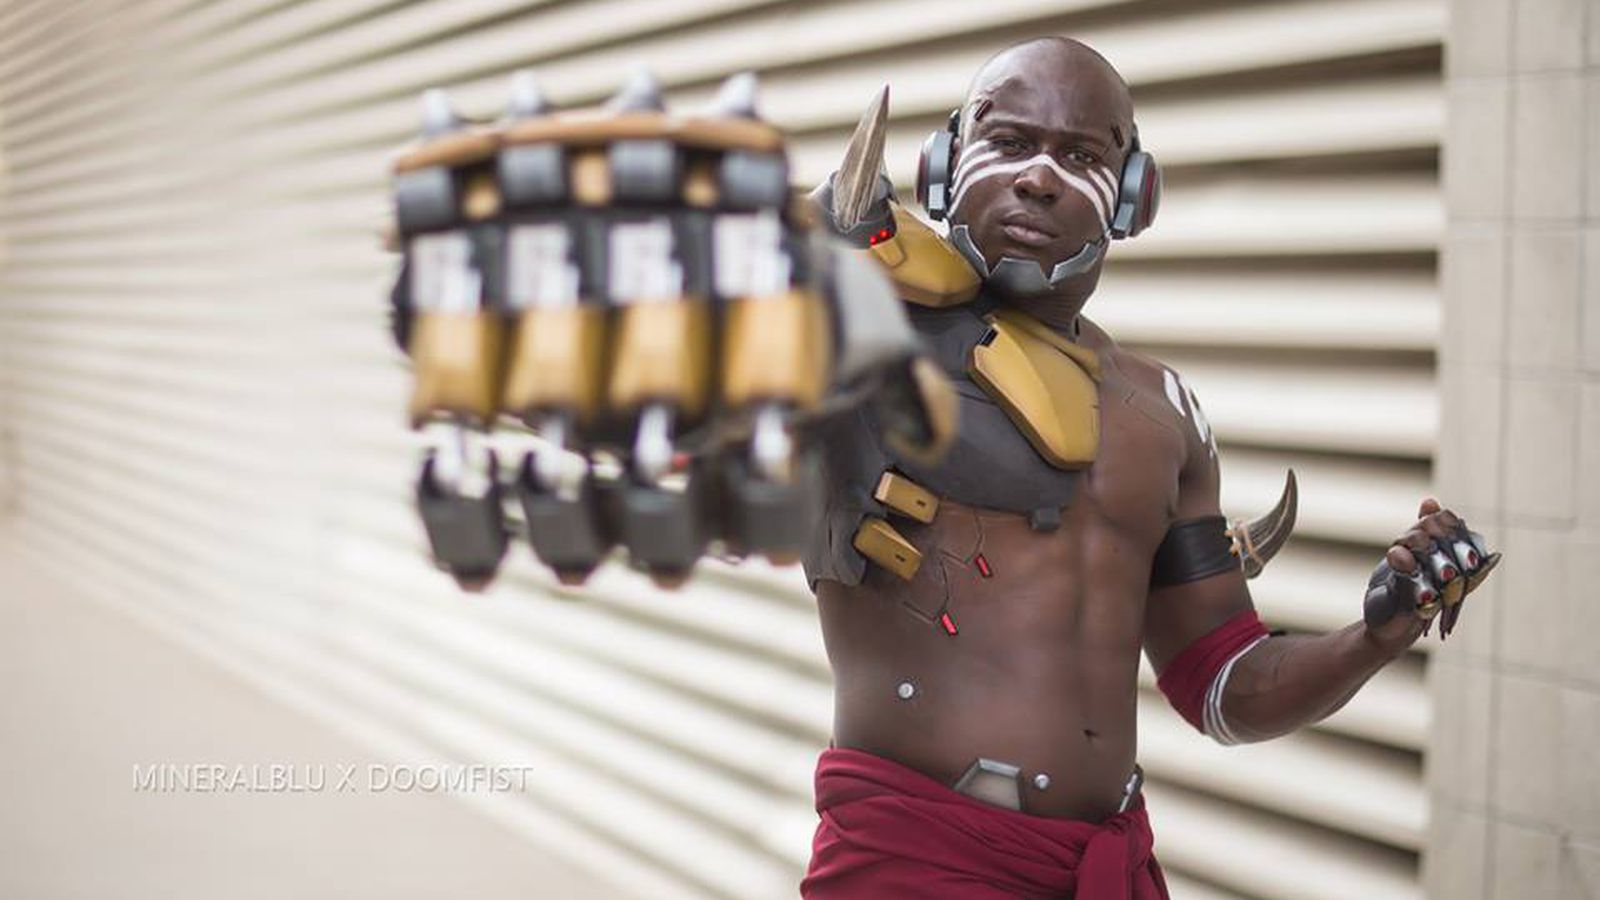 Blizzard's official Doomfist cosplay shows up at Comic-Con